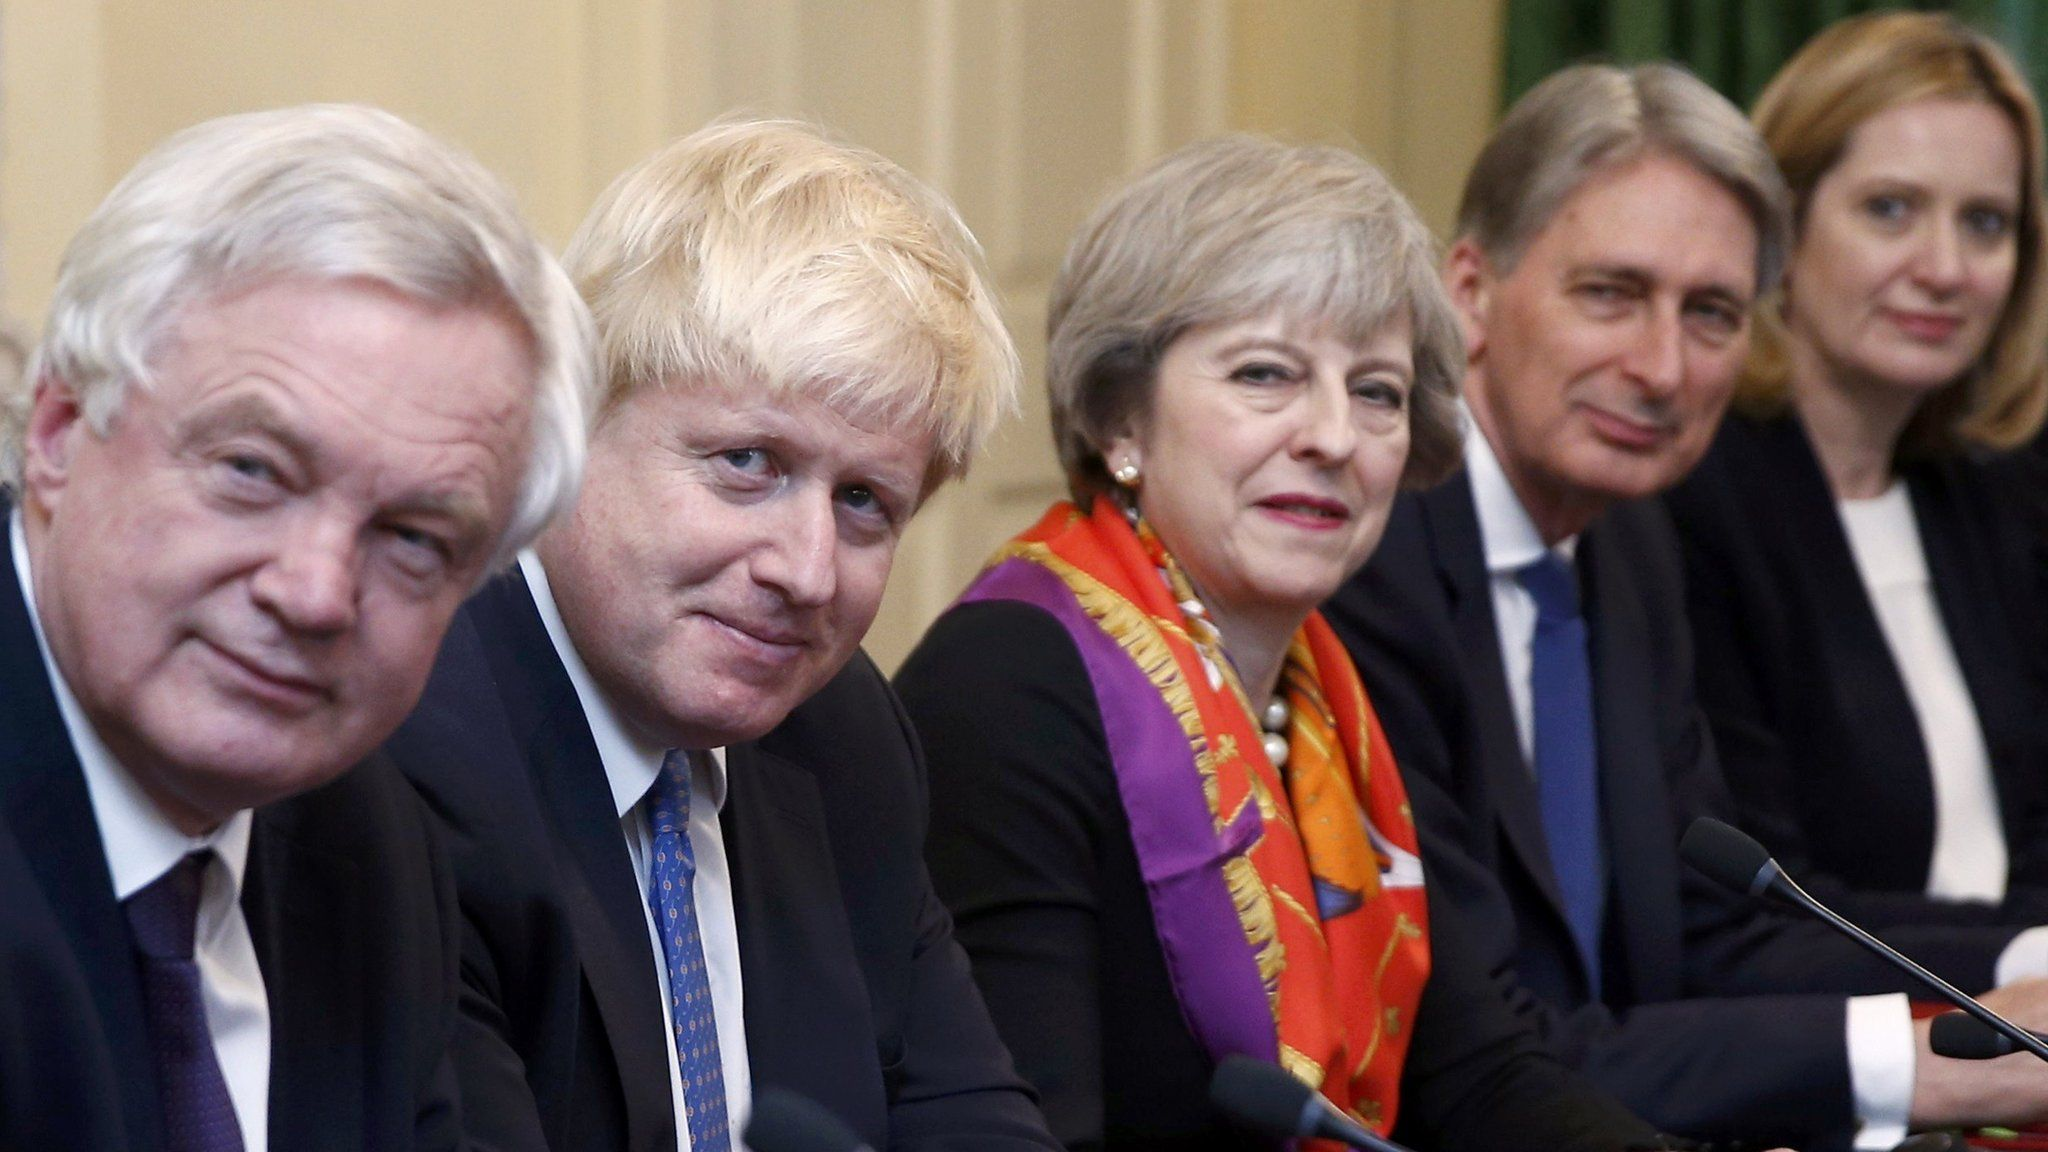 Theresa May and her Cabinet ministers